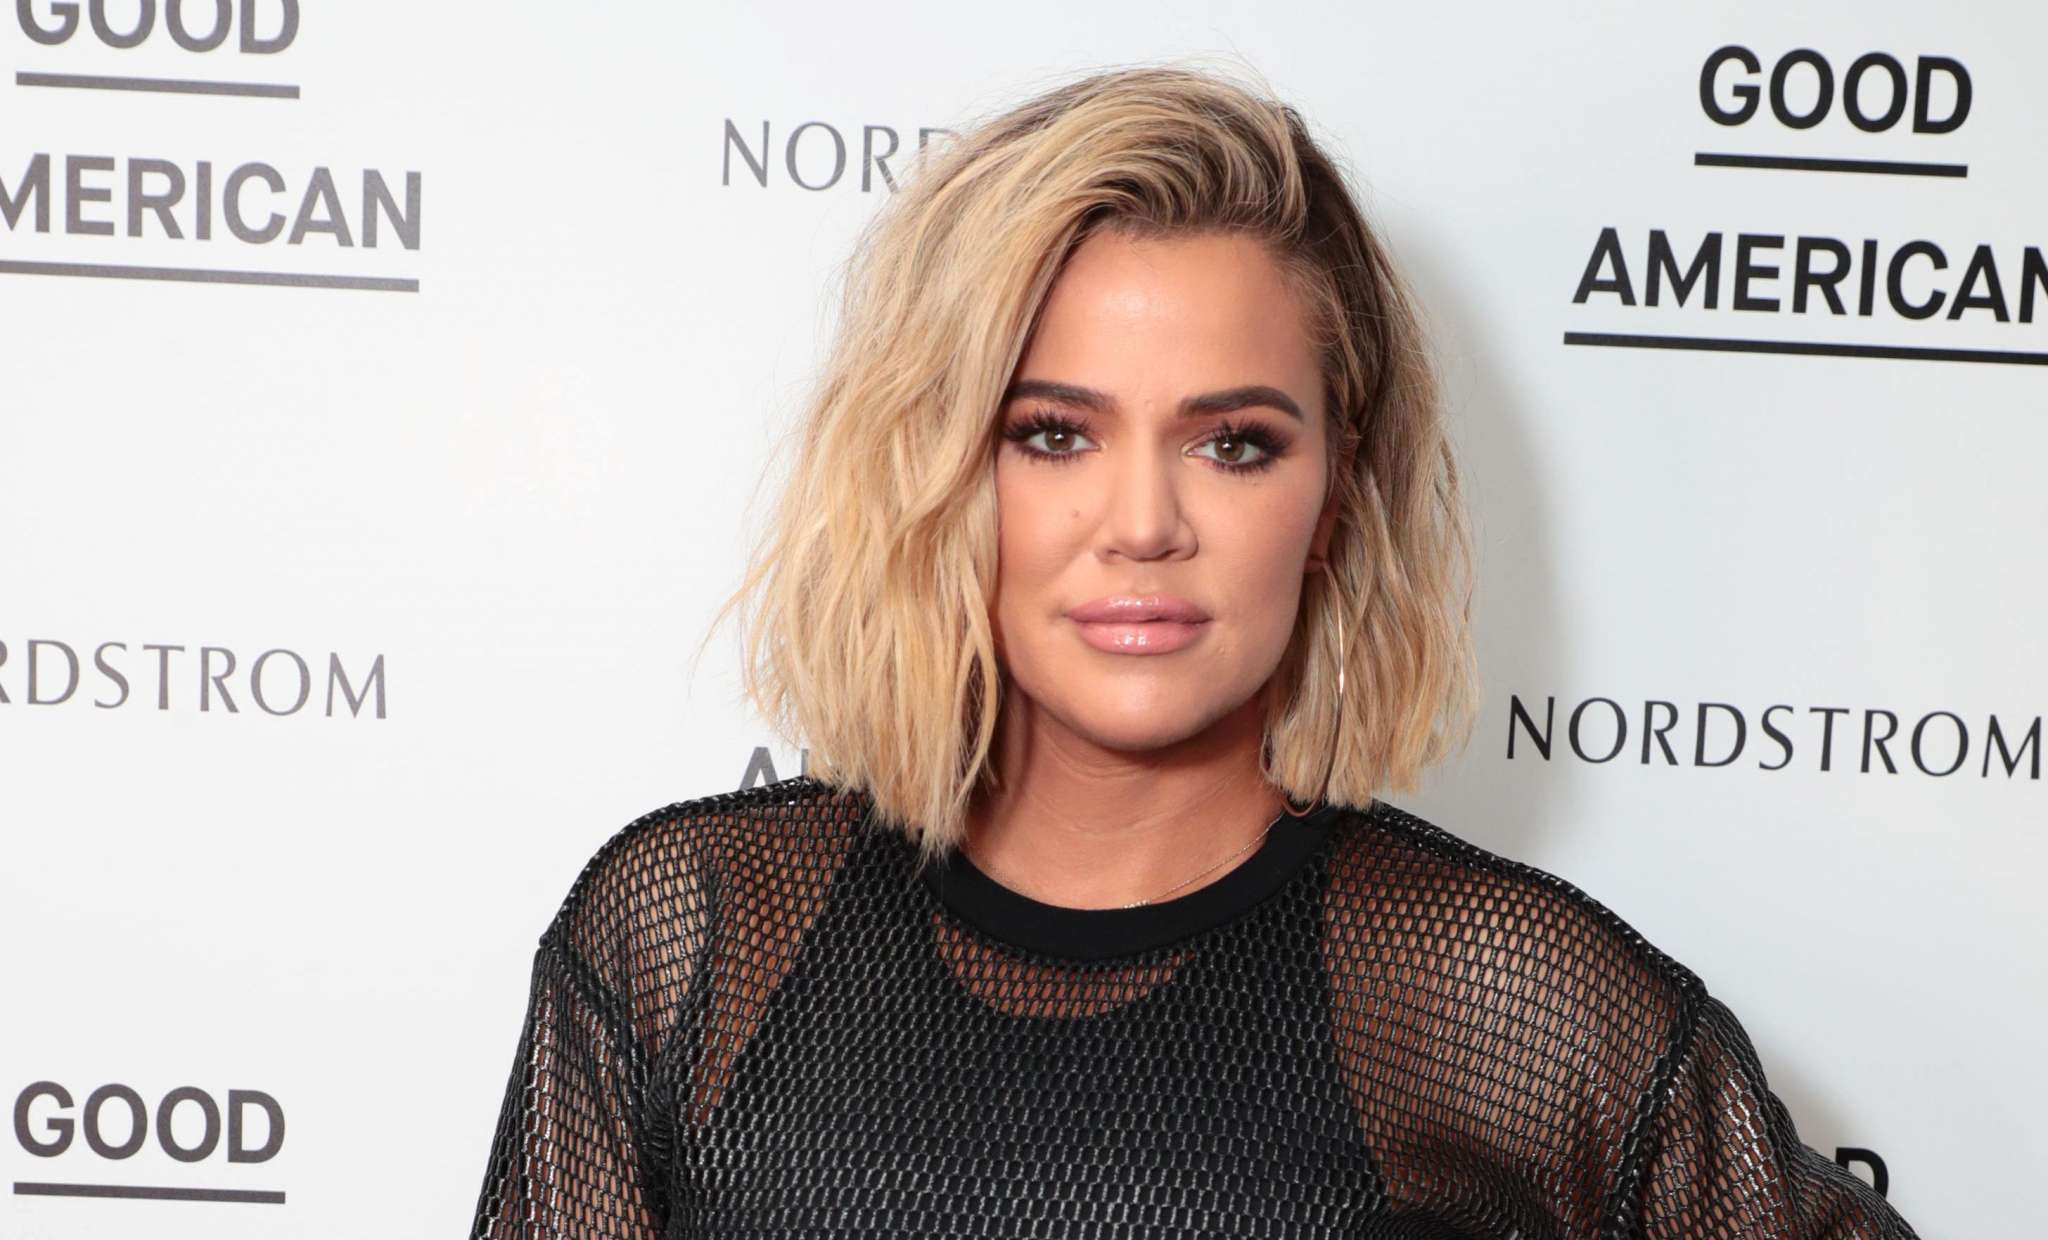 khloe-kardashian-was-reportedly-warned-by-a-psychic-about-tristans-cheating-before-the-jordyn-woods-drama-watch-the-prediction-in-the-video